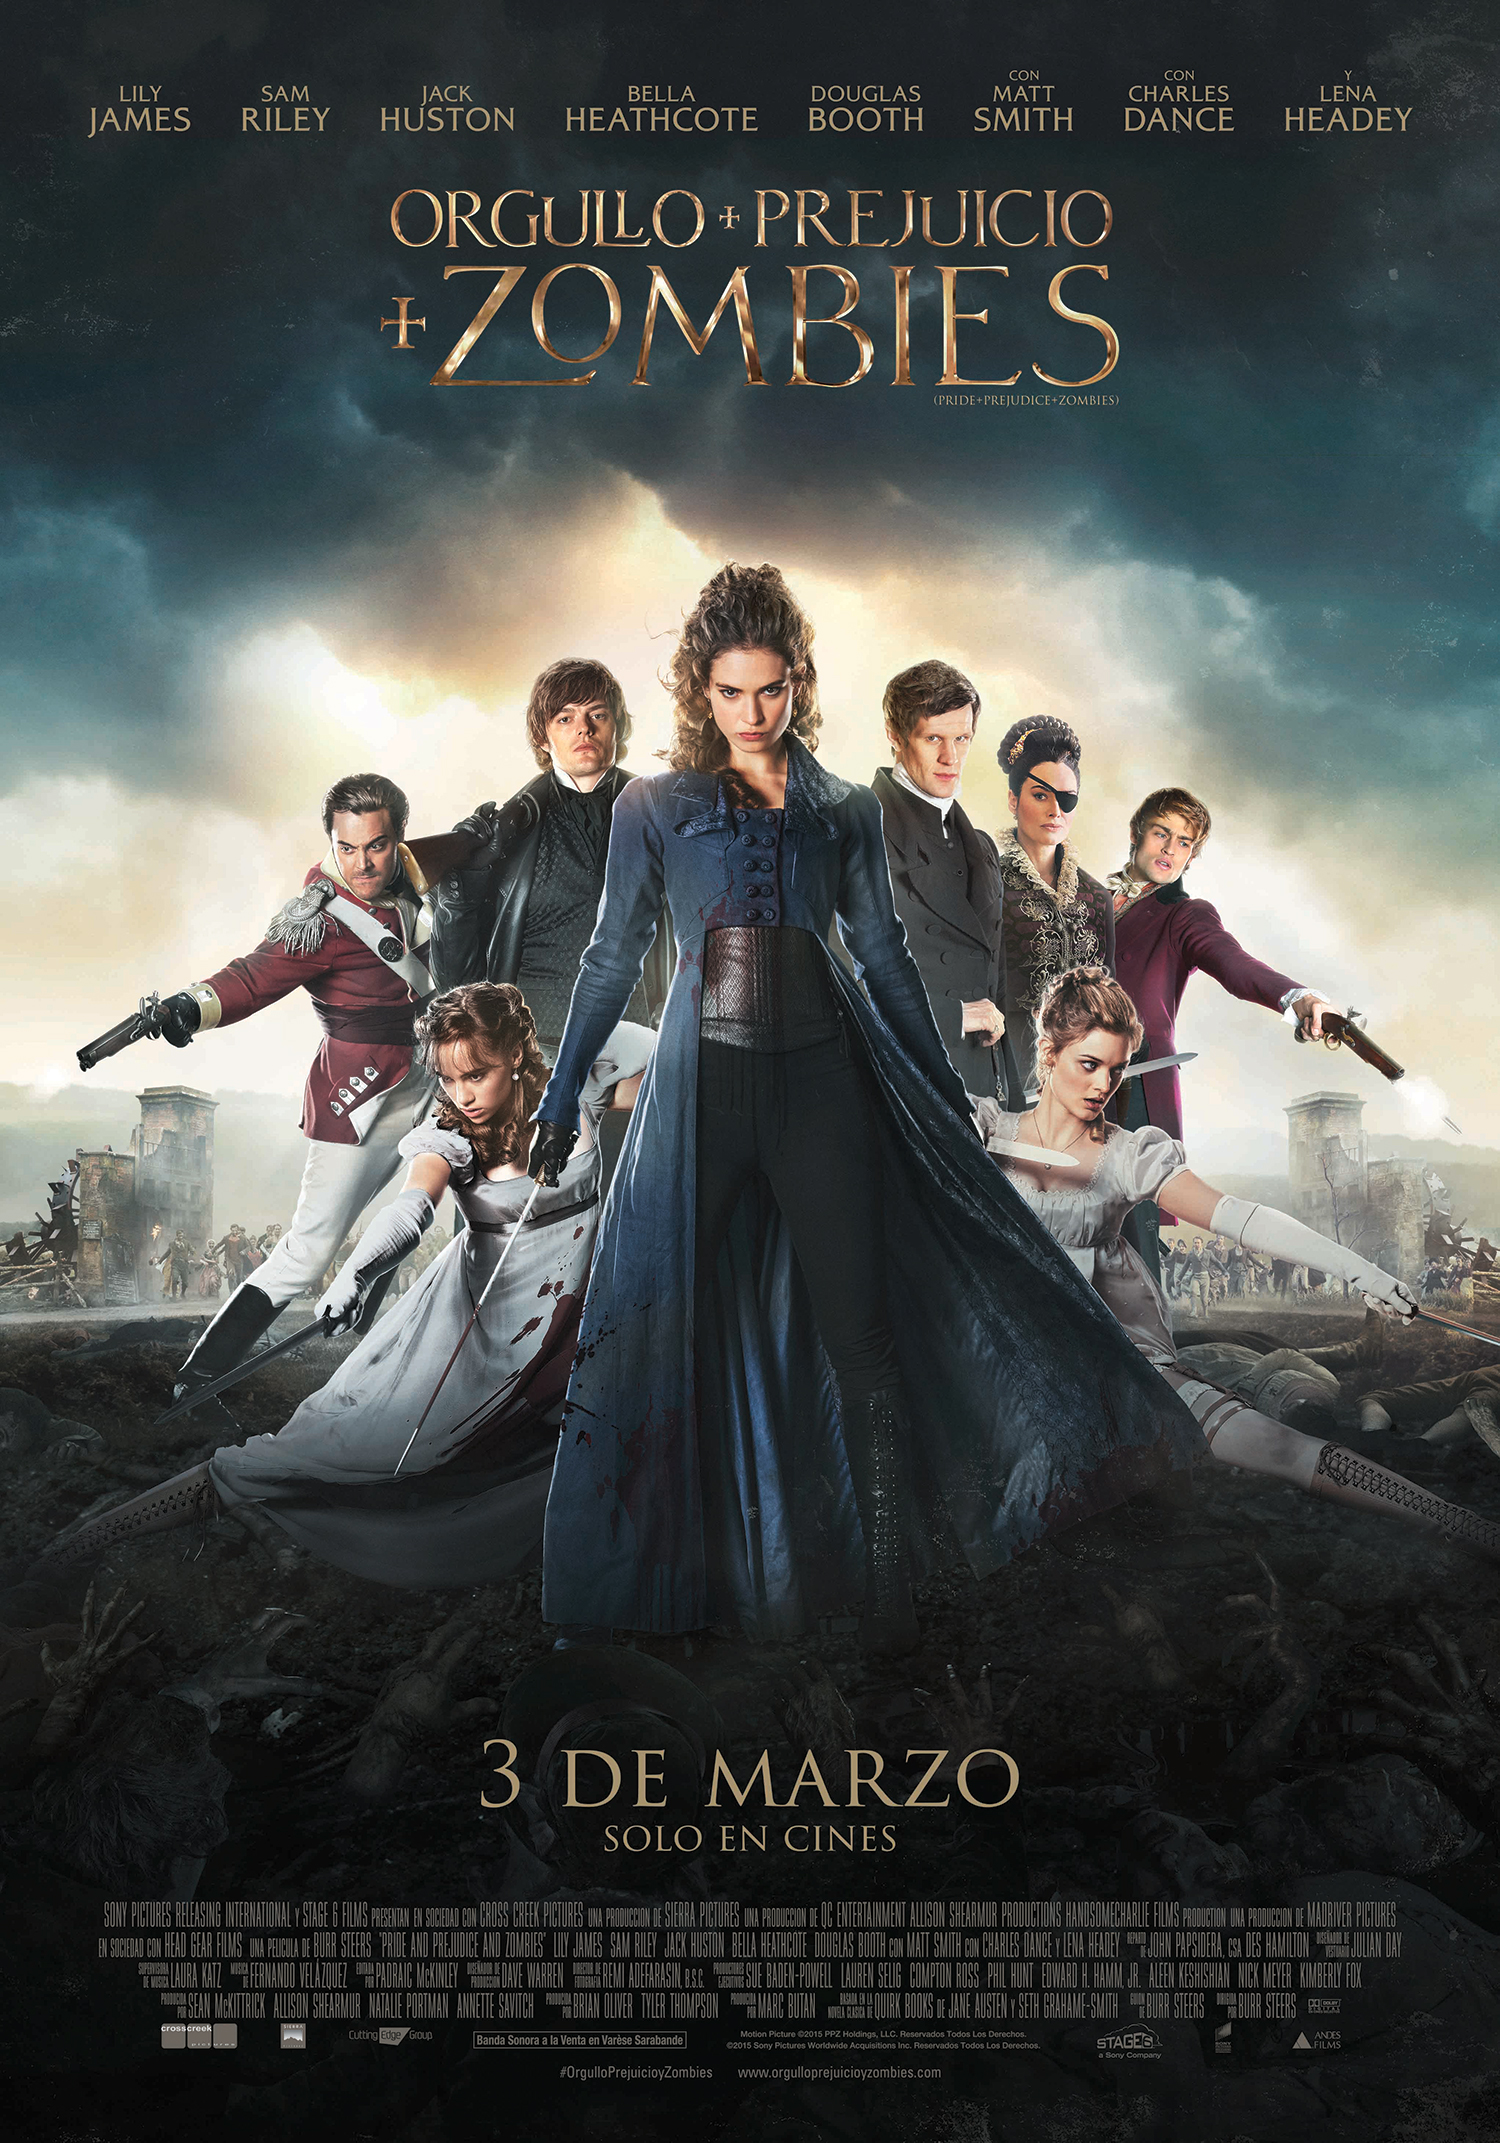 https://www.andesfilms.com.pe/orgullo-prejuicio-zombies/